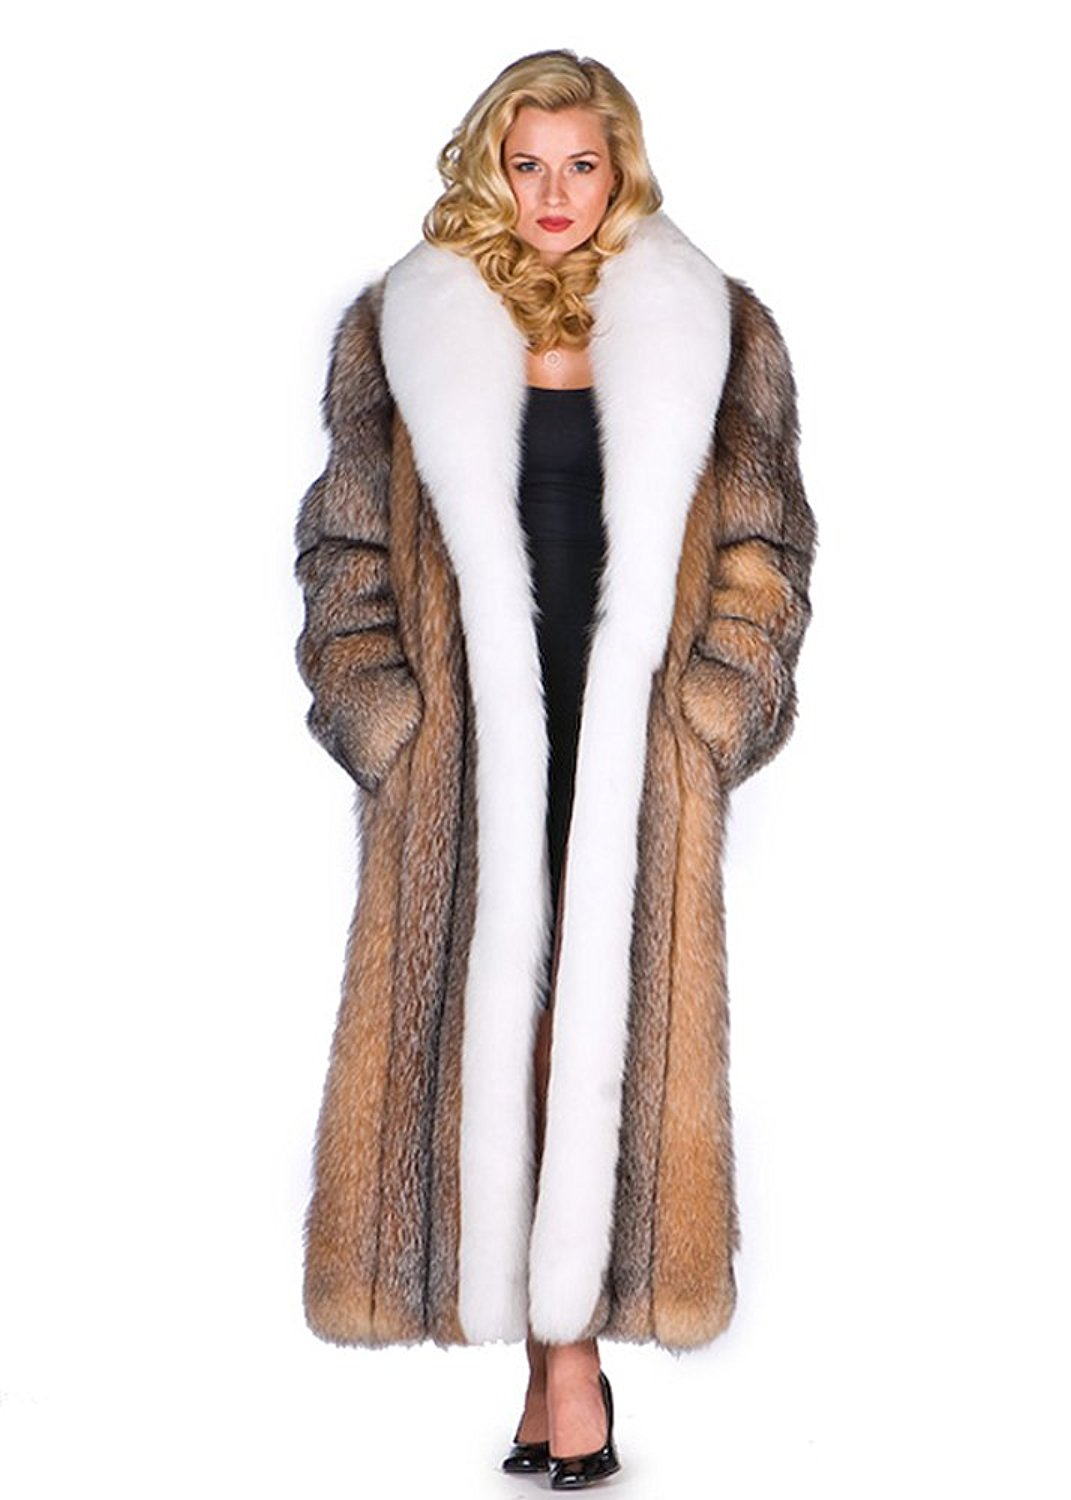 df00379adf2e6 Get Quotations · Long Fox Fur Coat For Women Real Full Length White Fox Trim  - Crystal Fox Body